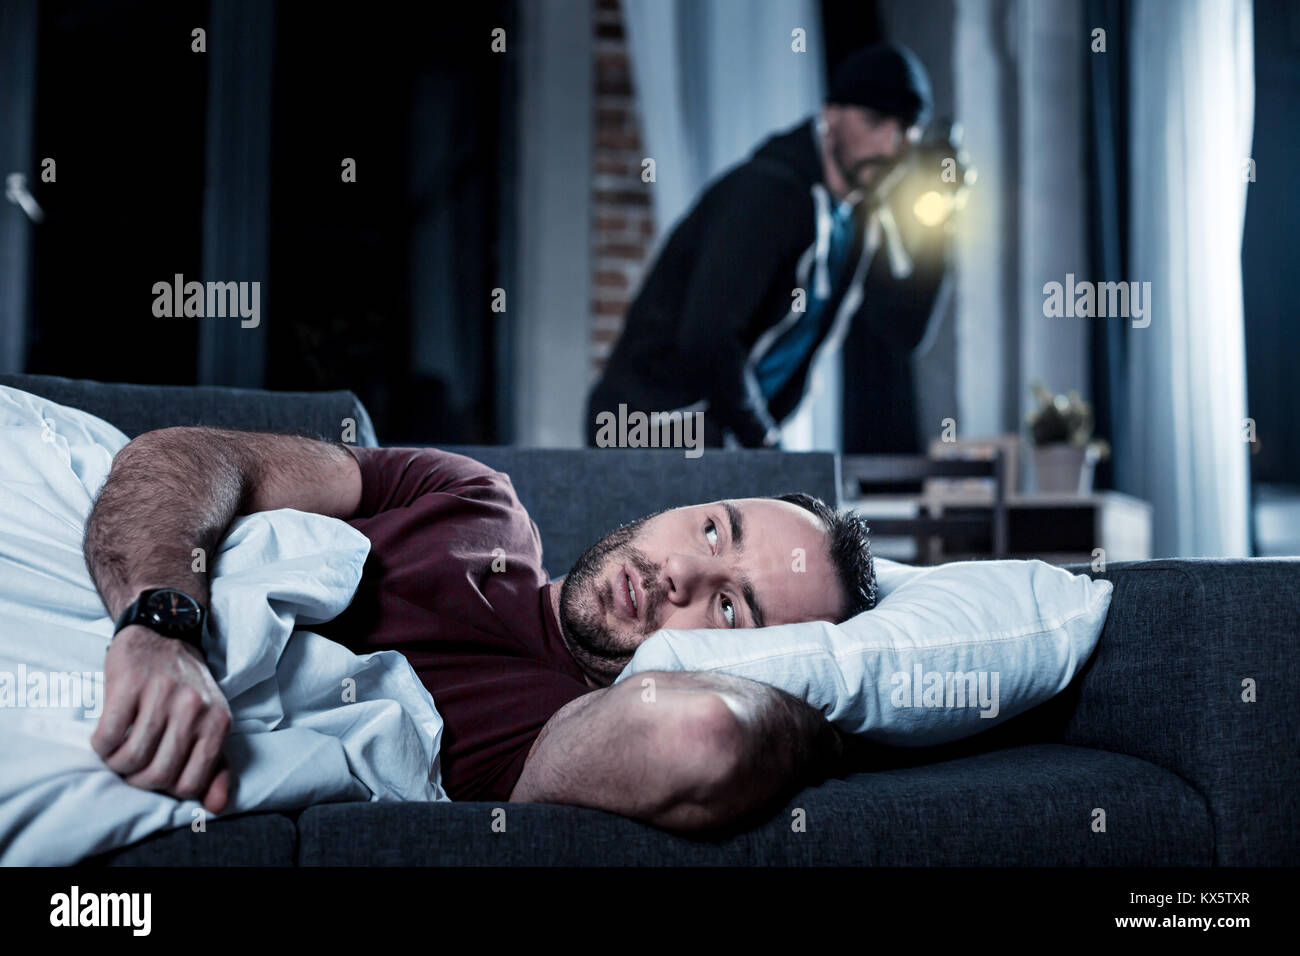 Alarmed man waking up and hearing someone being inside - Stock Image